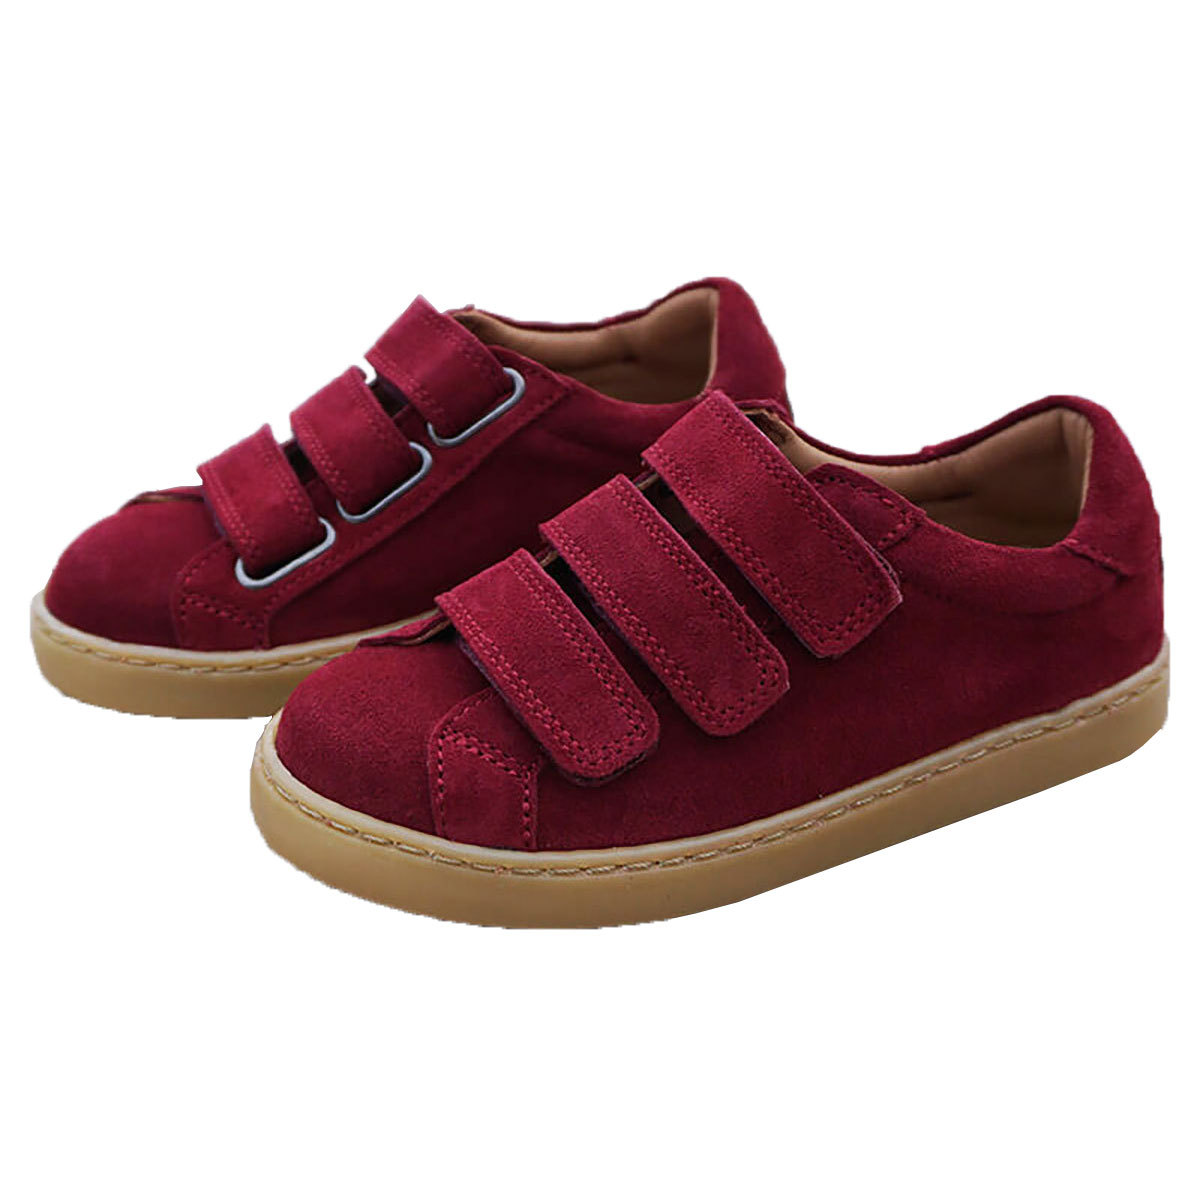 Chaussons & Chaussures Basket Môme Grenat - 26